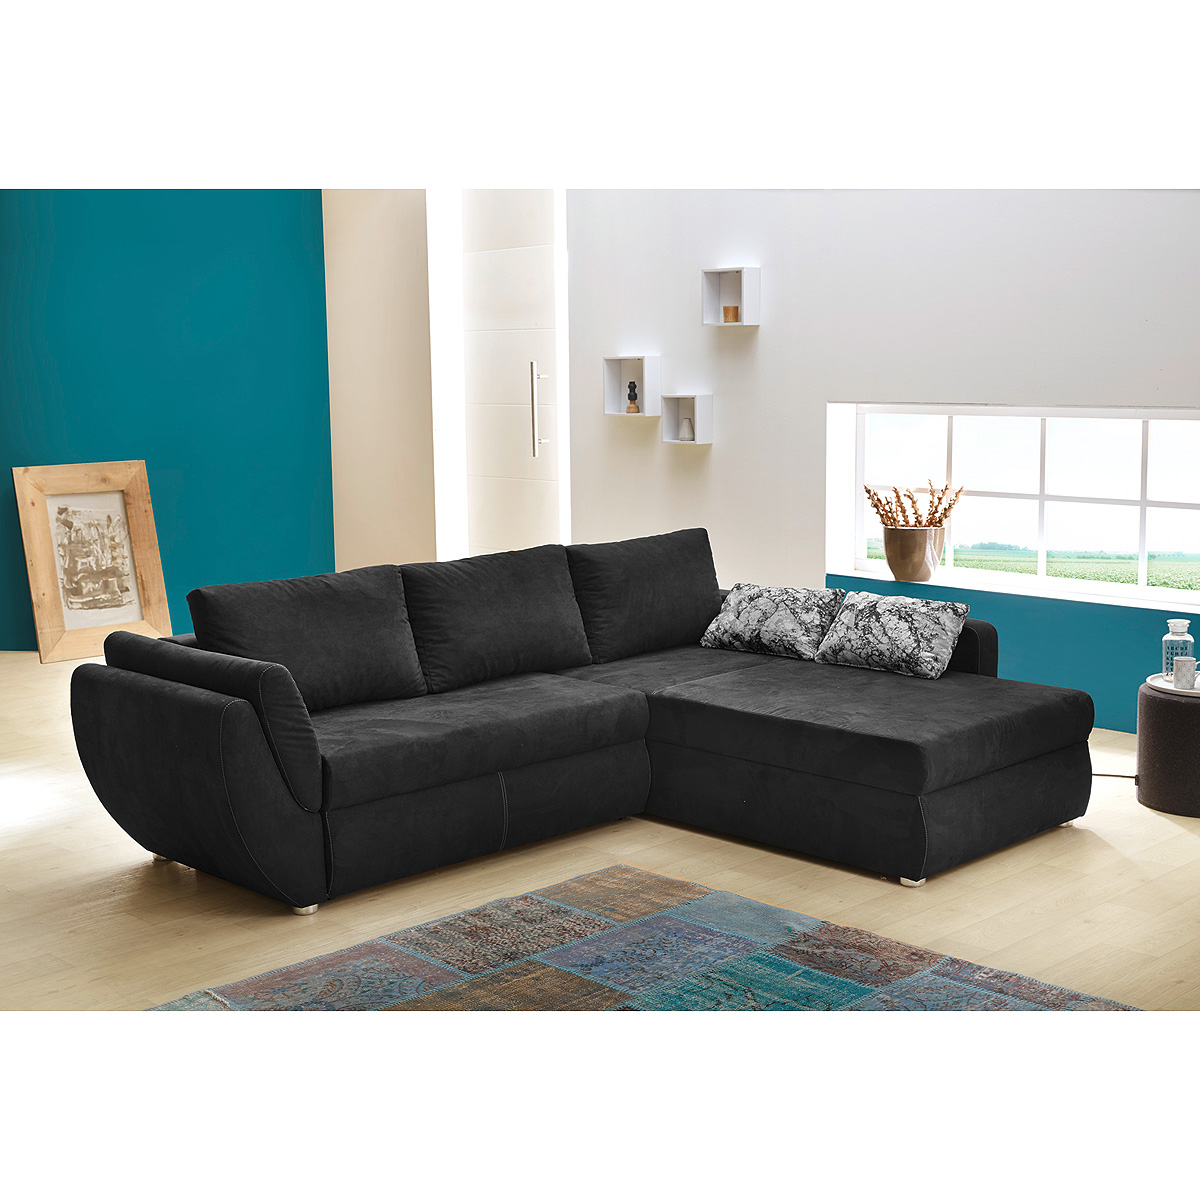 wohnlandschaft taifun sofa ecksofa in schwarz mit bettfunktion und kissen ebay. Black Bedroom Furniture Sets. Home Design Ideas